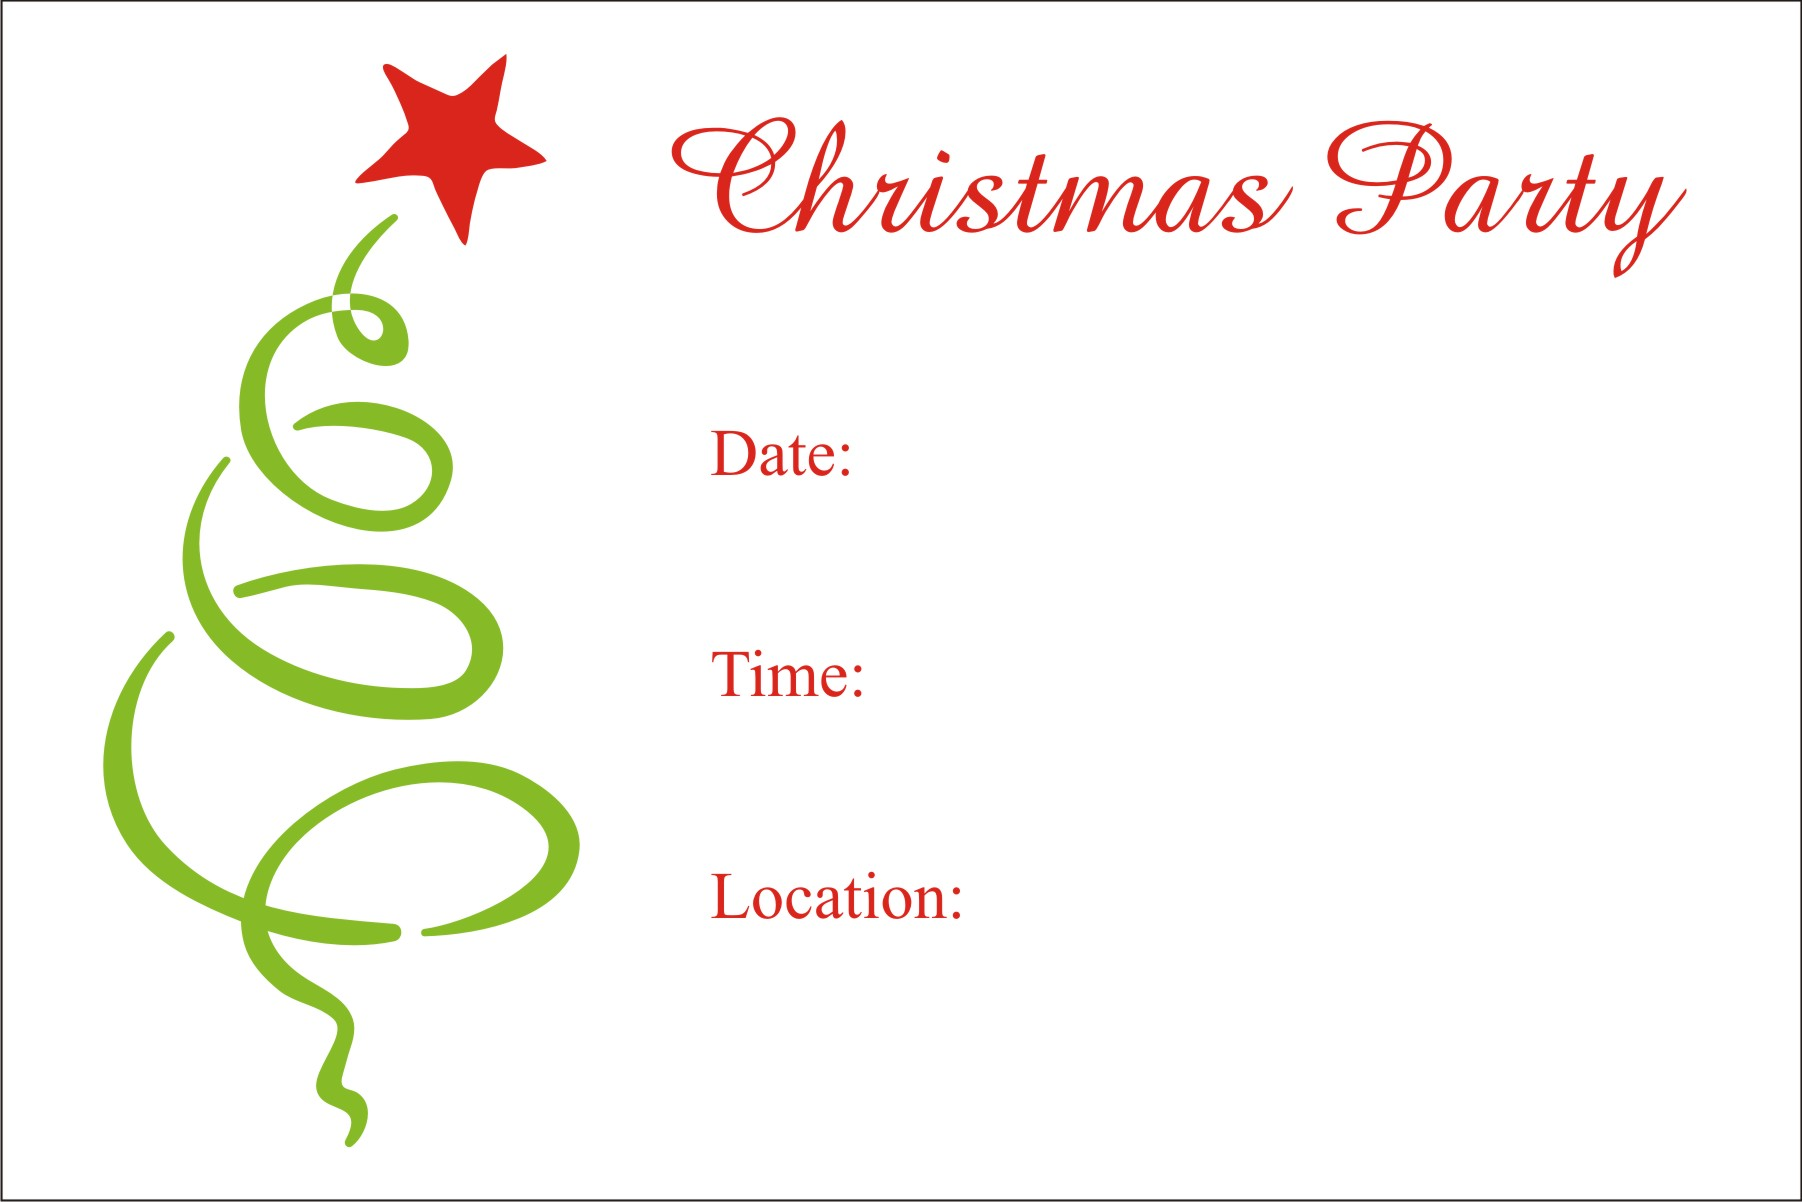 Christmas Party Free Printable Holiday Invitation Personalized – Invitations for Christmas Party